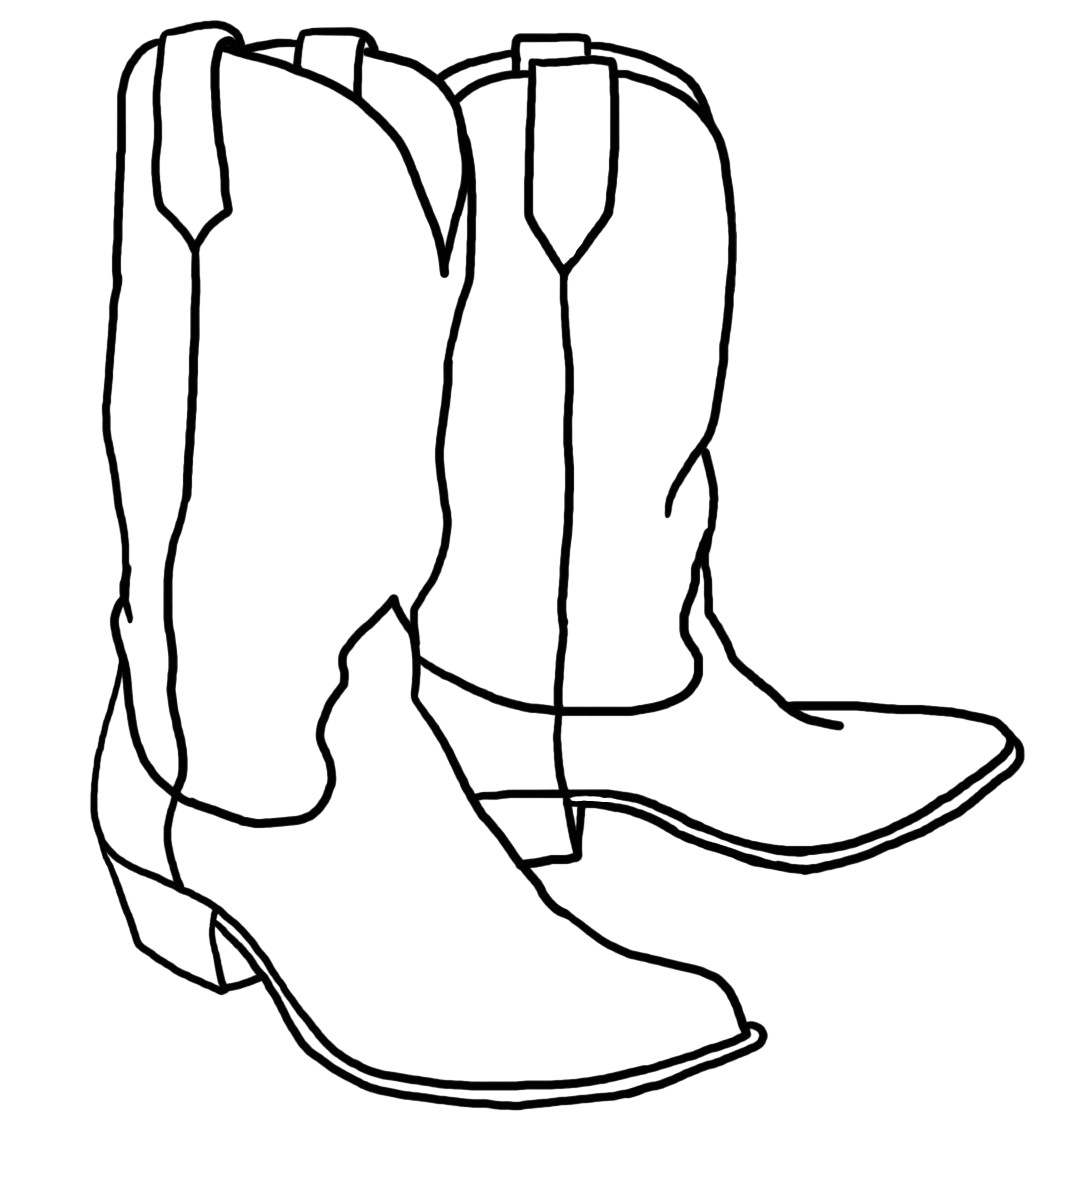 Boot clipart black and white 3 » Clipart Station.